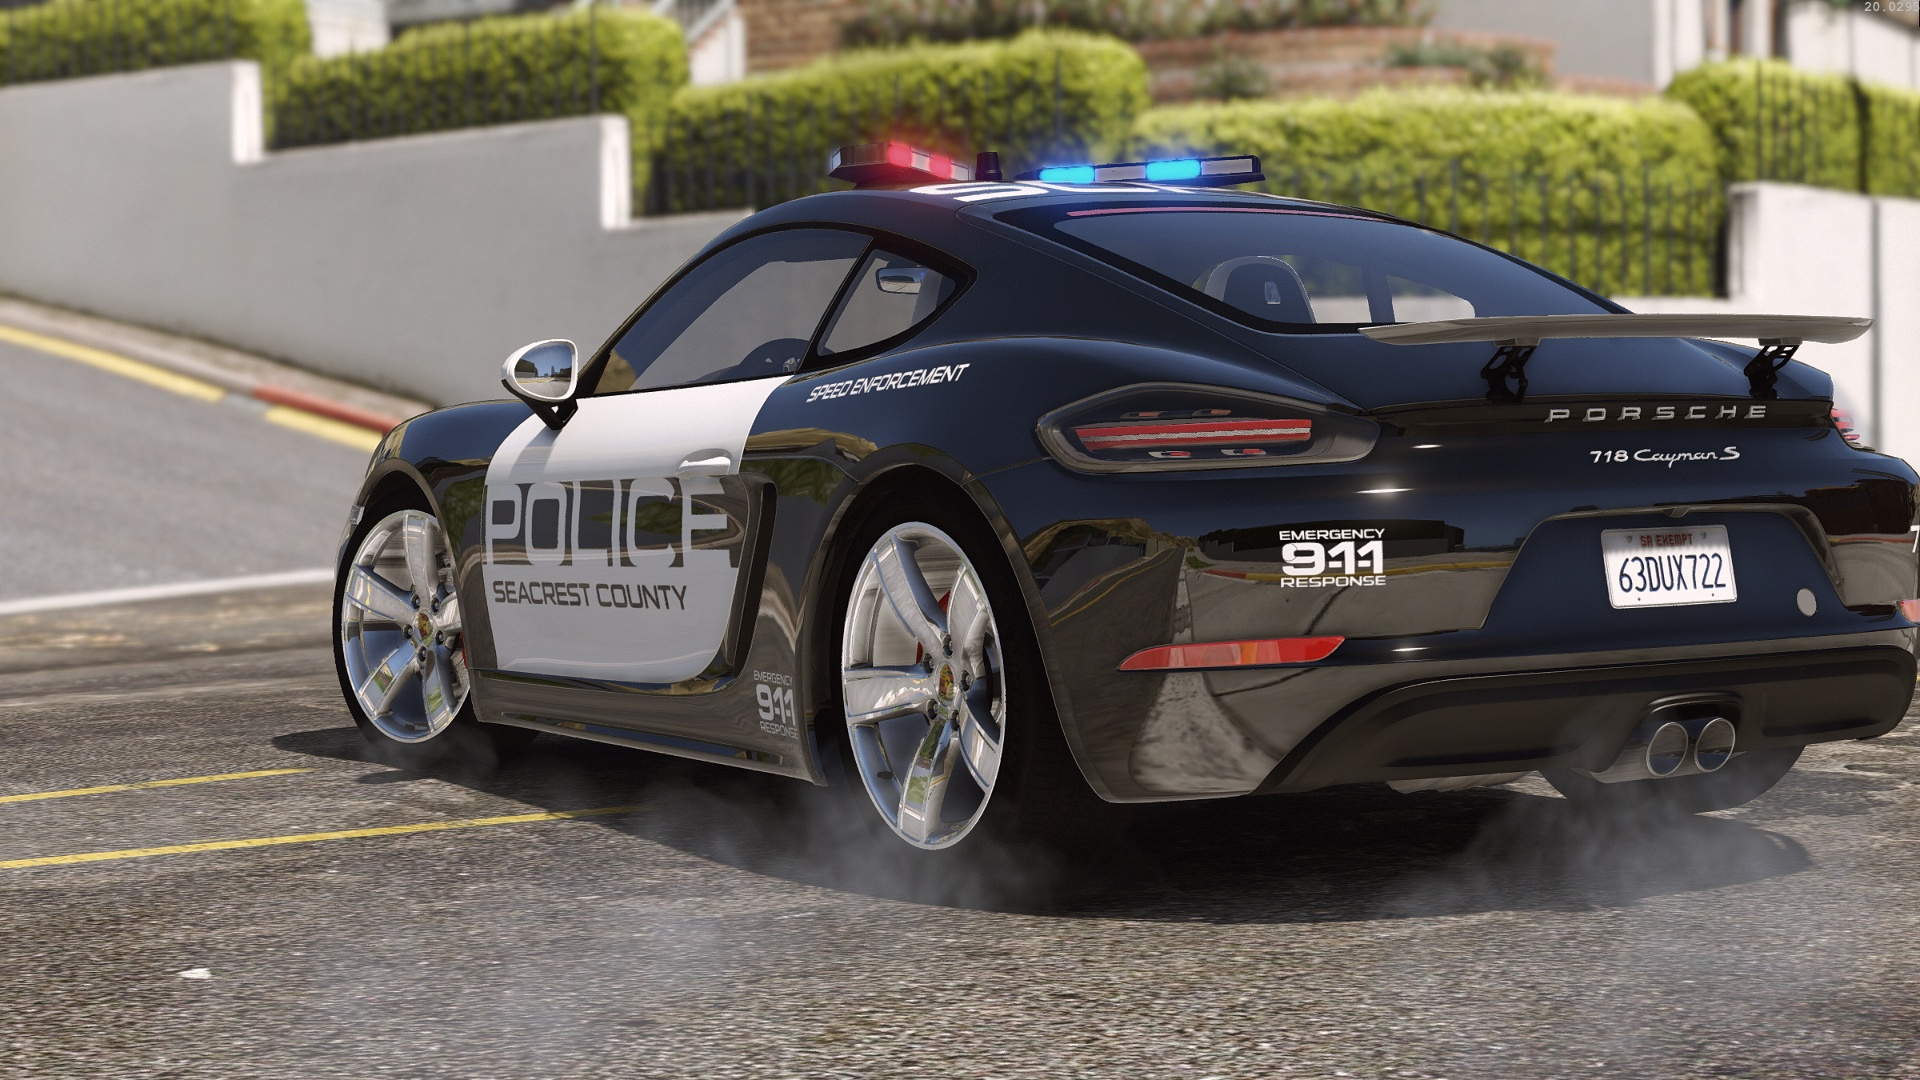 porsche 718 cayman s hot pursuit police add on replace gta5. Black Bedroom Furniture Sets. Home Design Ideas